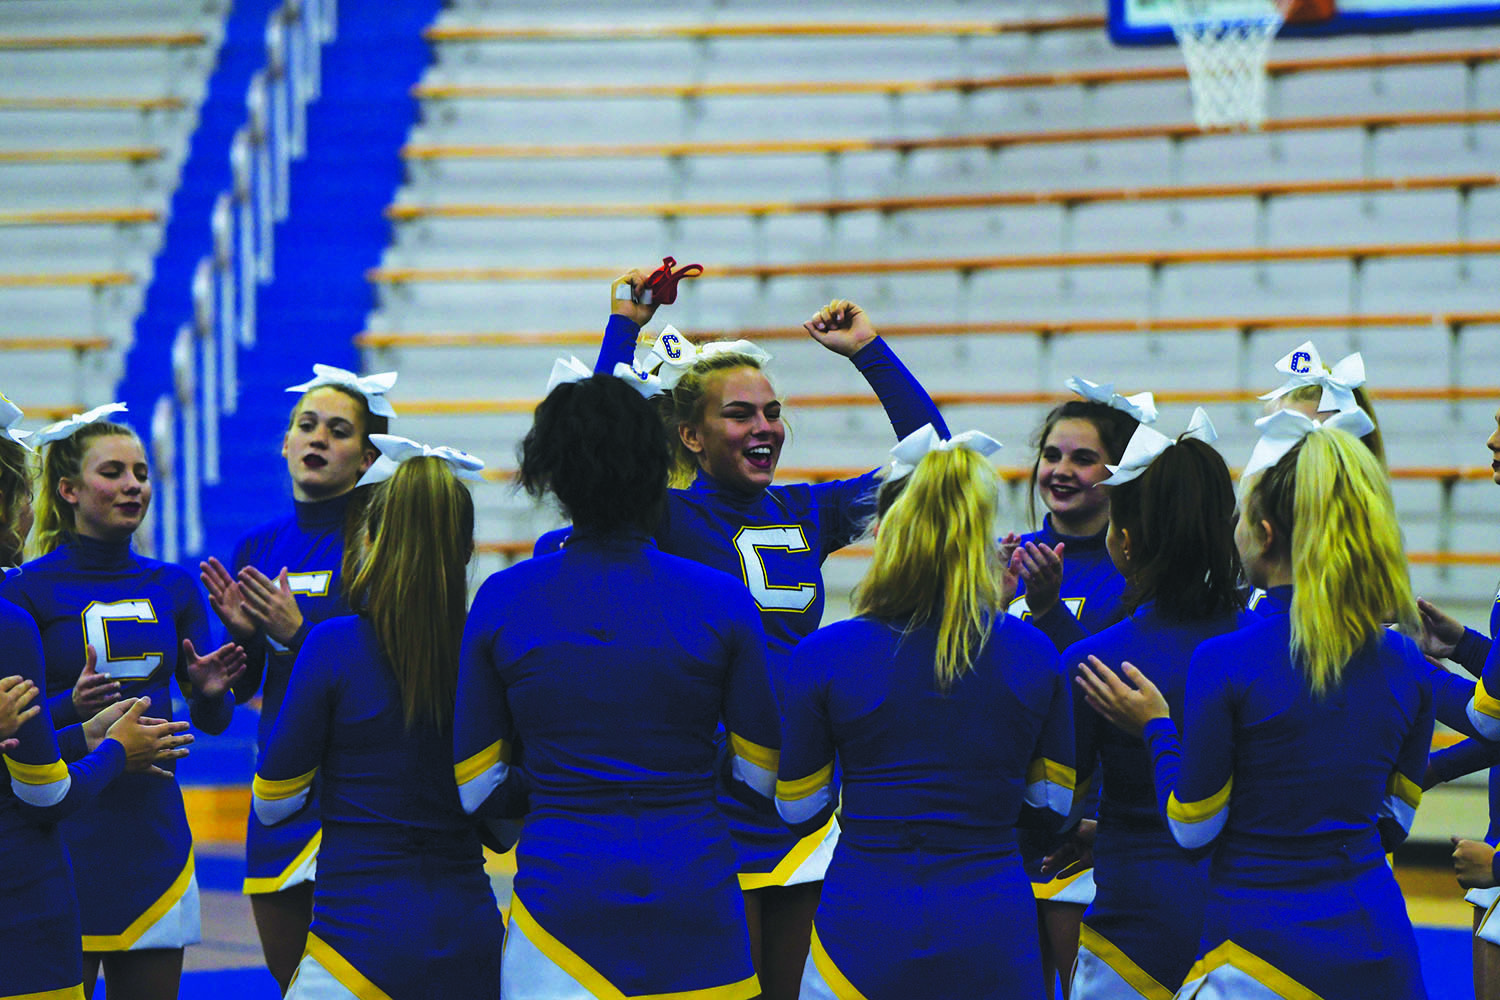 CHEER-ING UP: Riley Shockey, varsity cheerleader and senior, pumps up her team for an upcoming routine. Shockey said when she performs in front of an audience there is more excitement and adrenaline.However, with new COVID-19 safety guidelines, her virtual performances have no audiences, which she said makes it harder to perform.